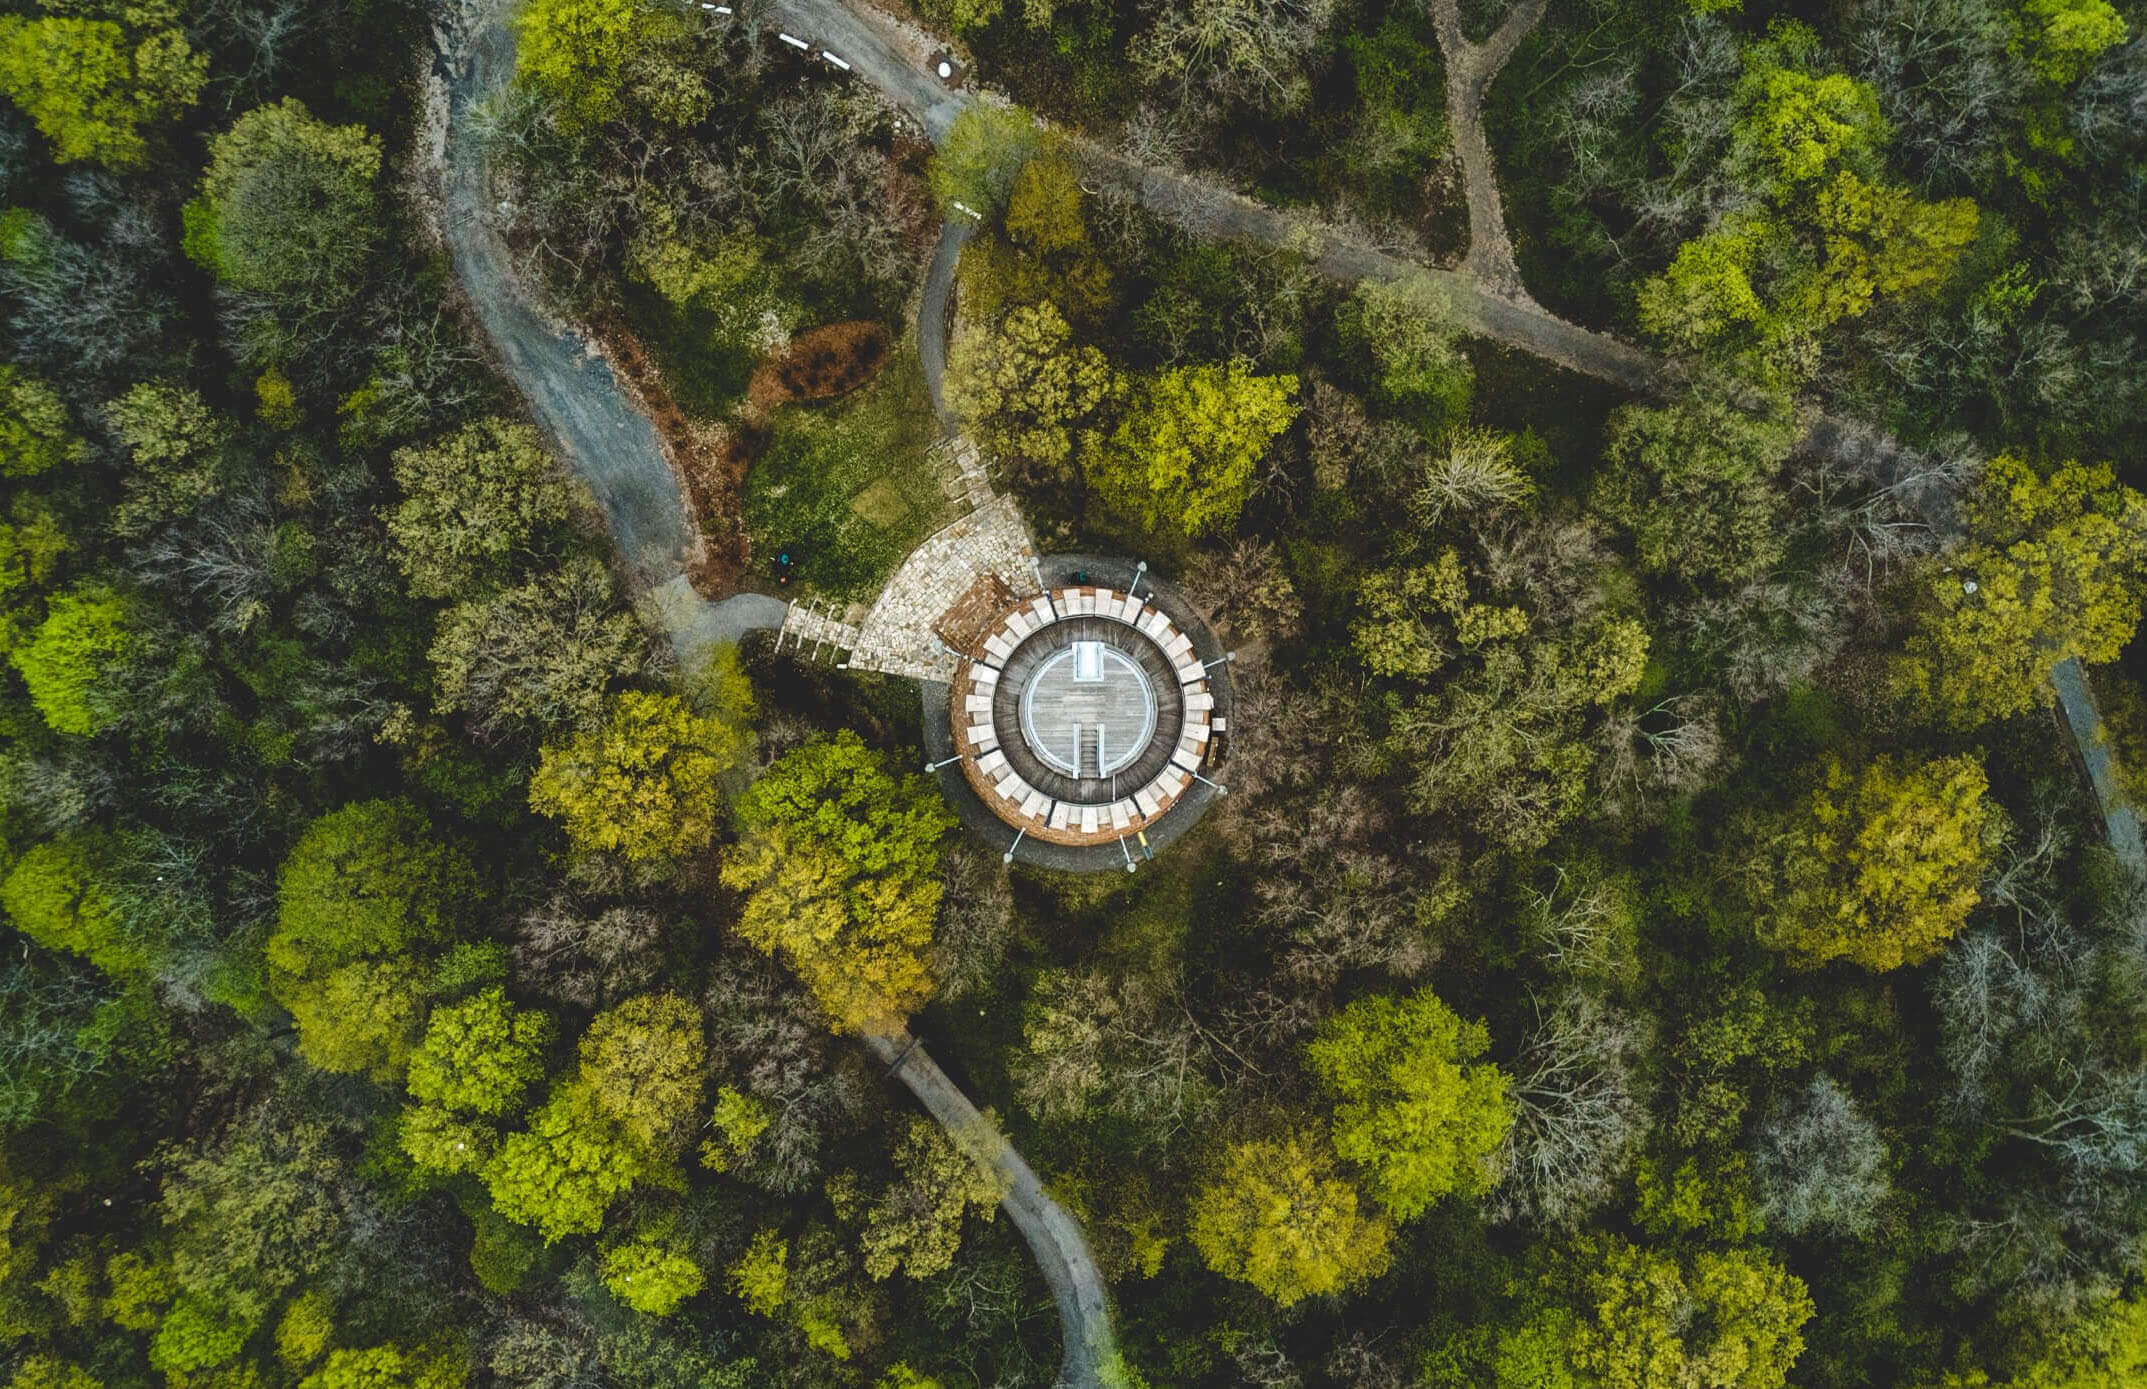 Arial shot of a greenhouse in the middle of a densely wooded, green area